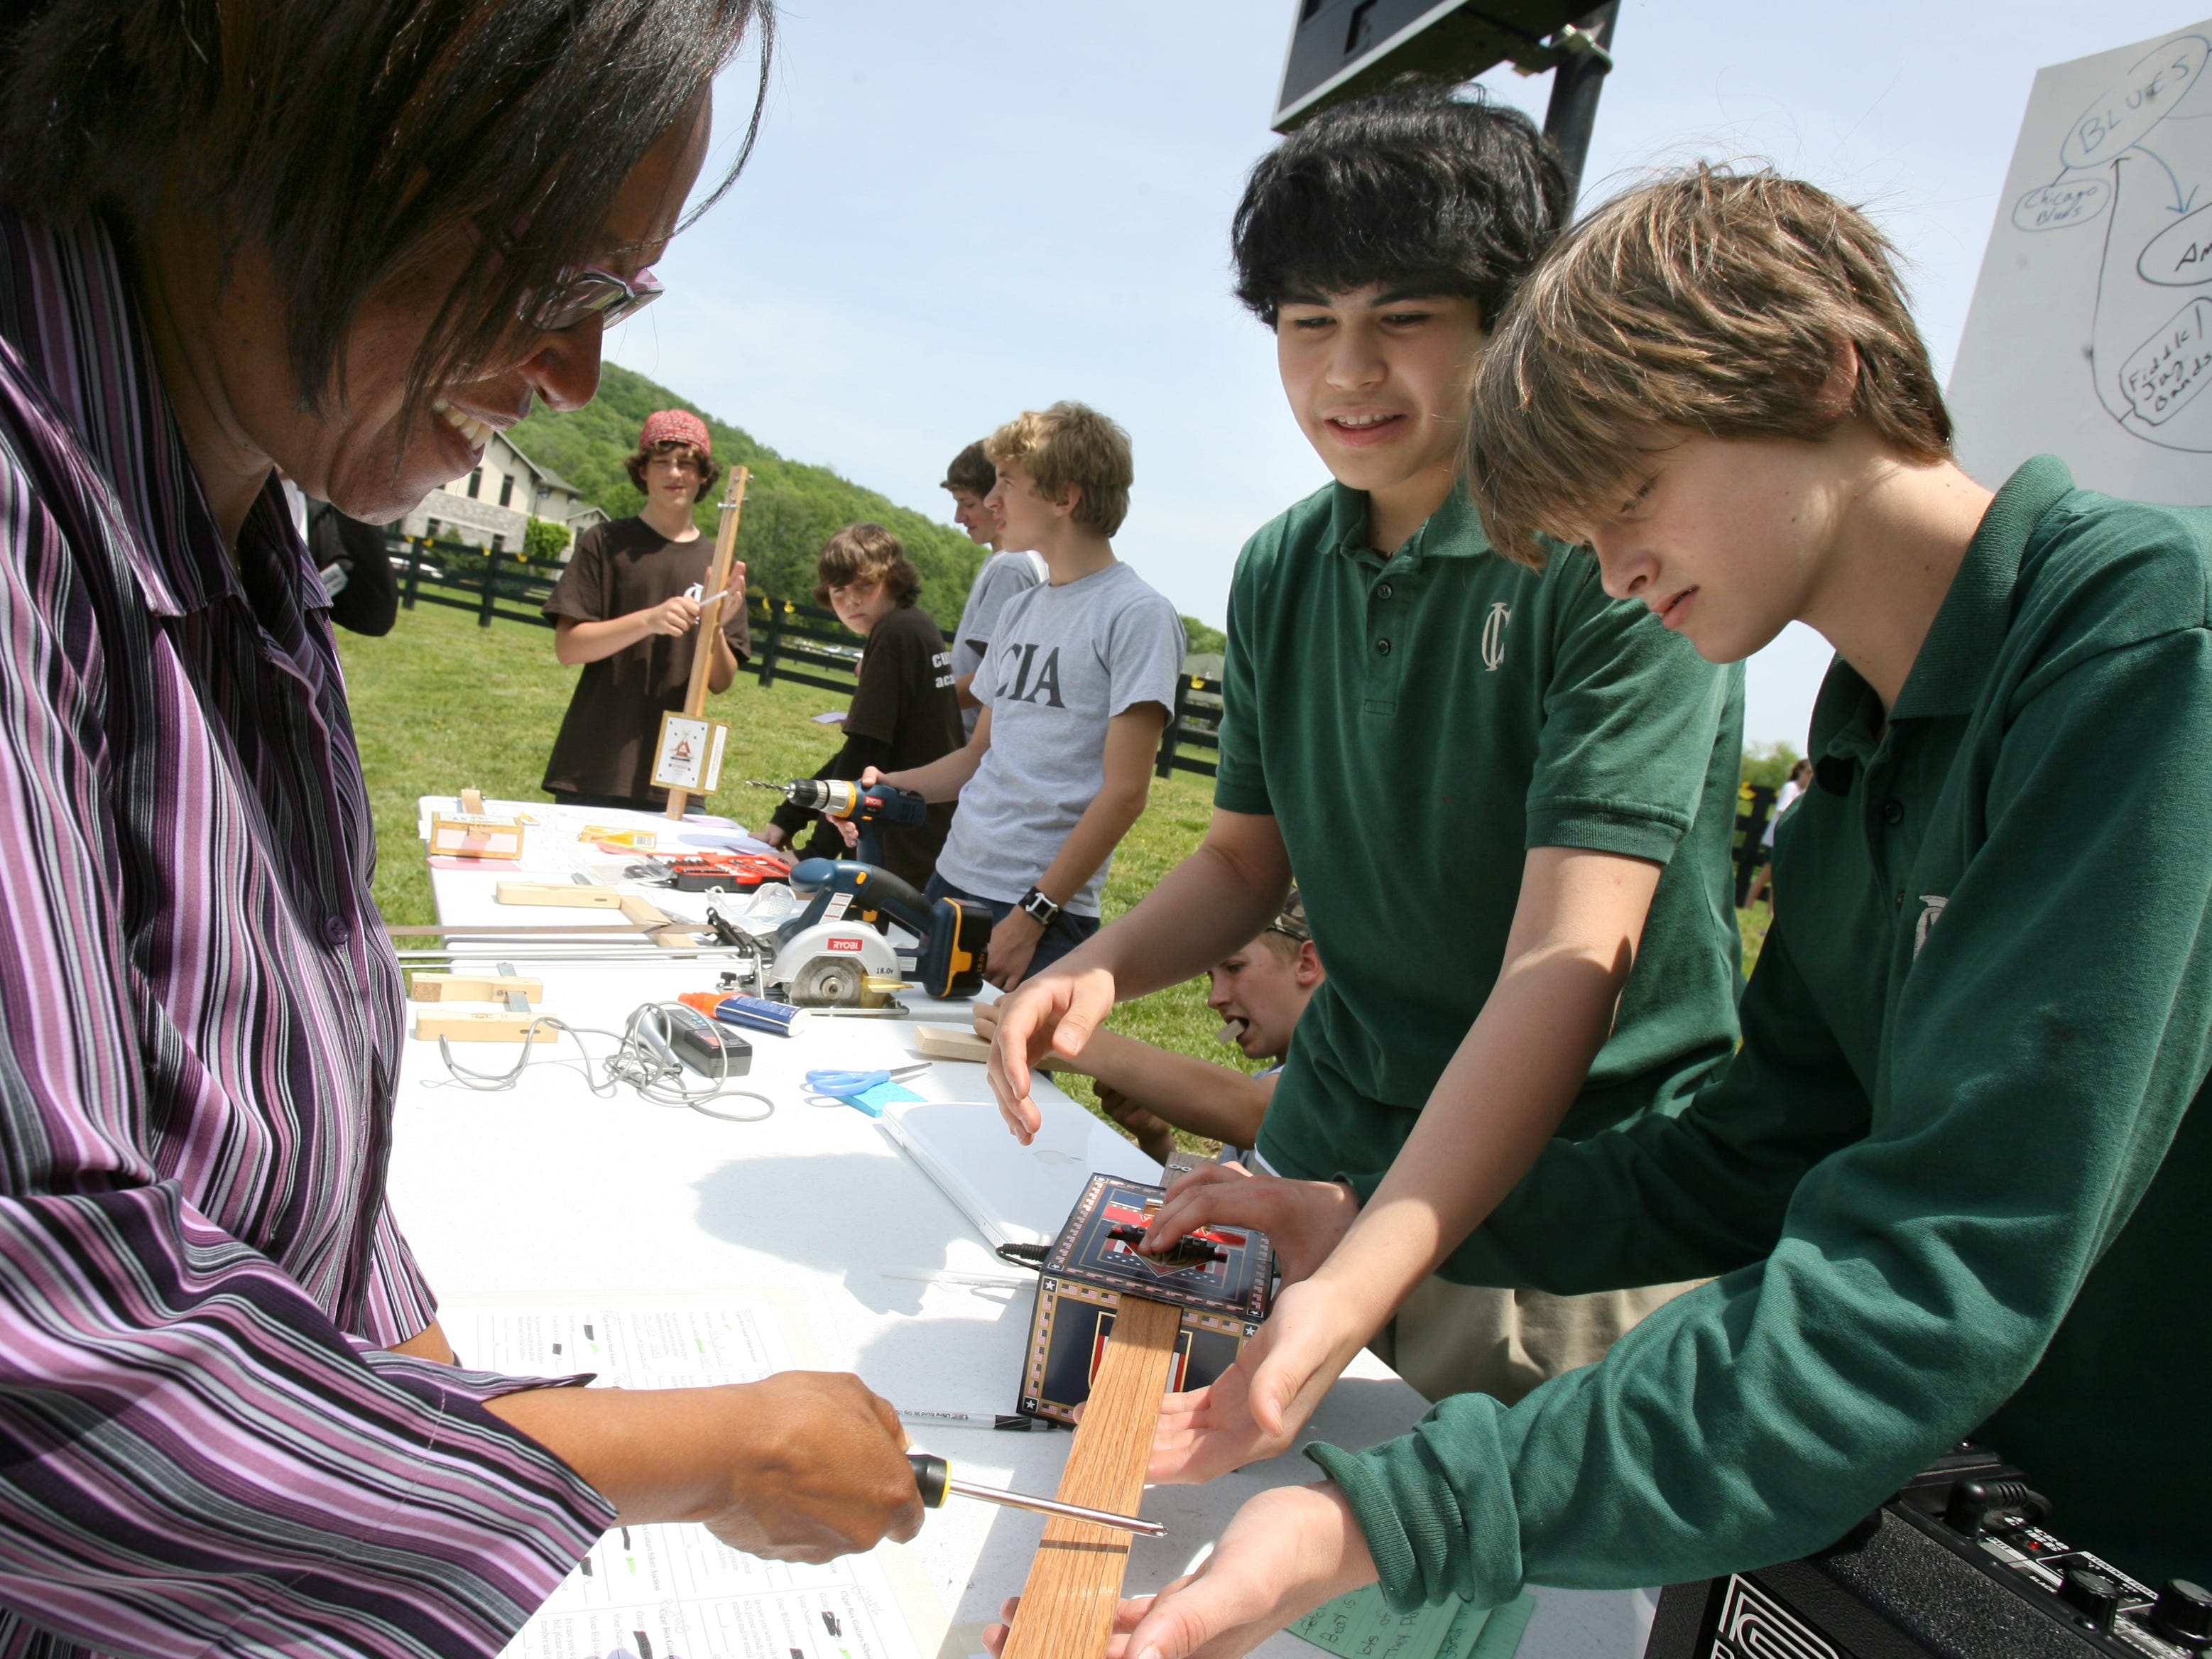 Parent Cathy Moulton checks out a cigar box slide guitar made by Kevin Moran, center, and Louis Dunn, right, at Currey Ingram Academy after the duck race in Beech Creek next to the school on May 7, 2008.